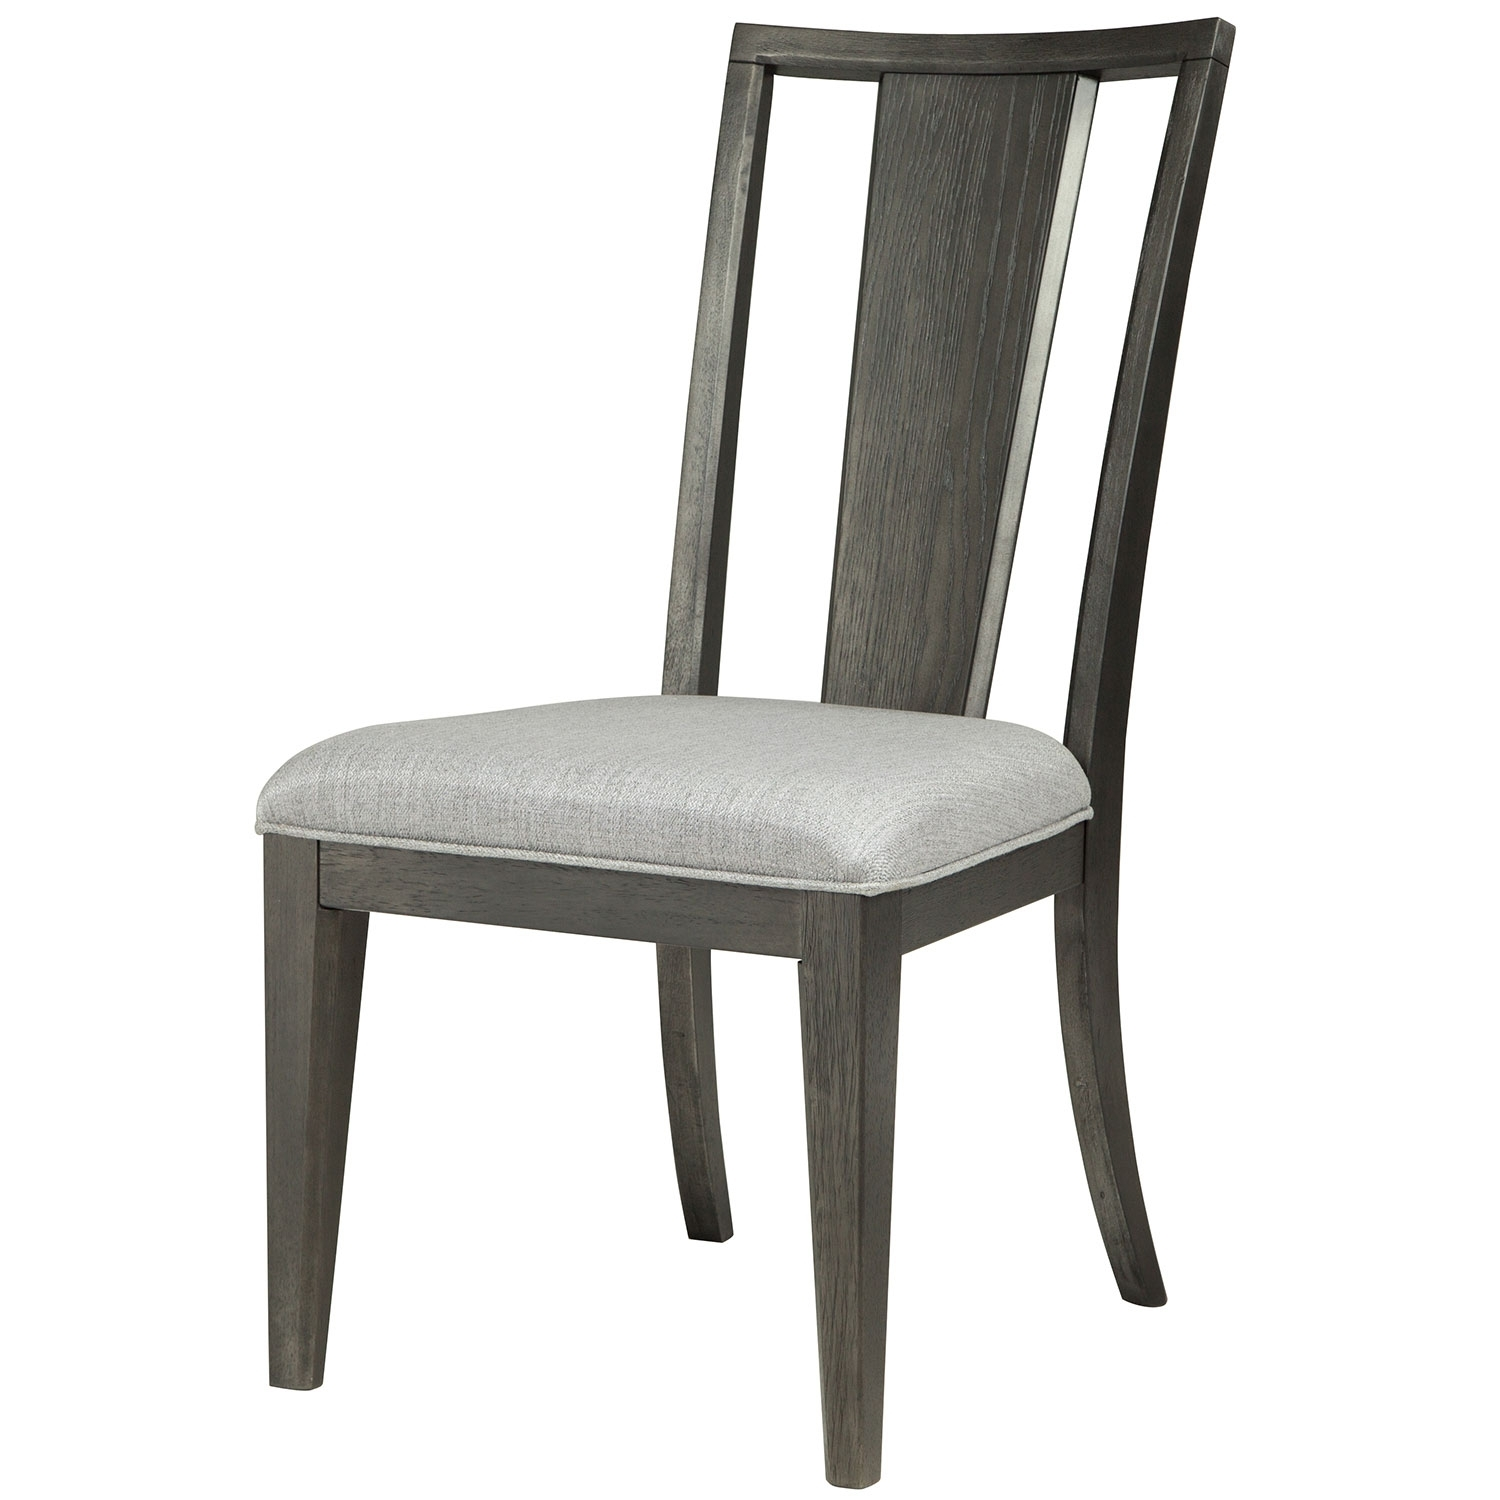 Well Known 251 First Cooper Luxe Living Dining Side Chair With Upholstered Seat Intended For Cooper Upholstered Side Chairs (View 16 of 20)